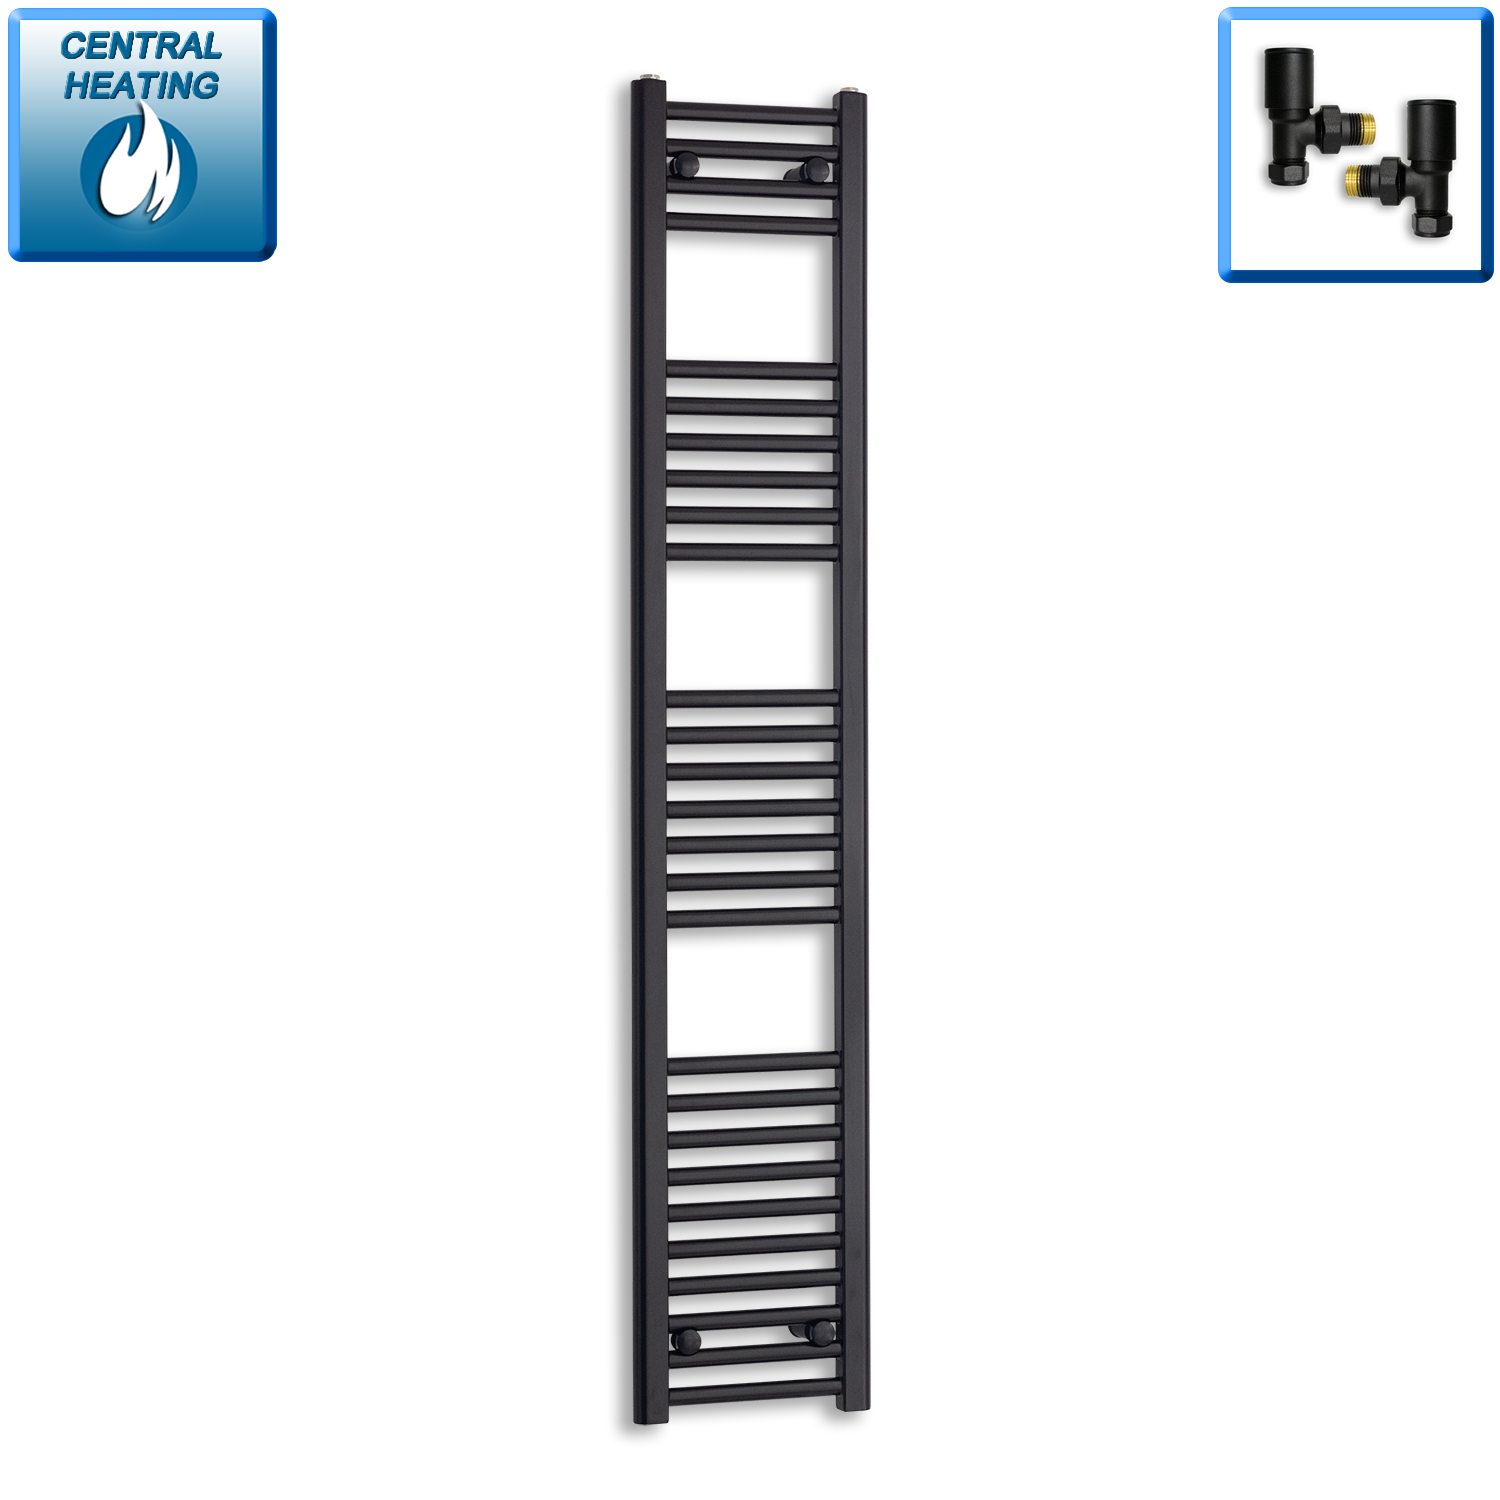 300mm Wide 1600mm High Black Towel Rail Radiator With Angled Valve